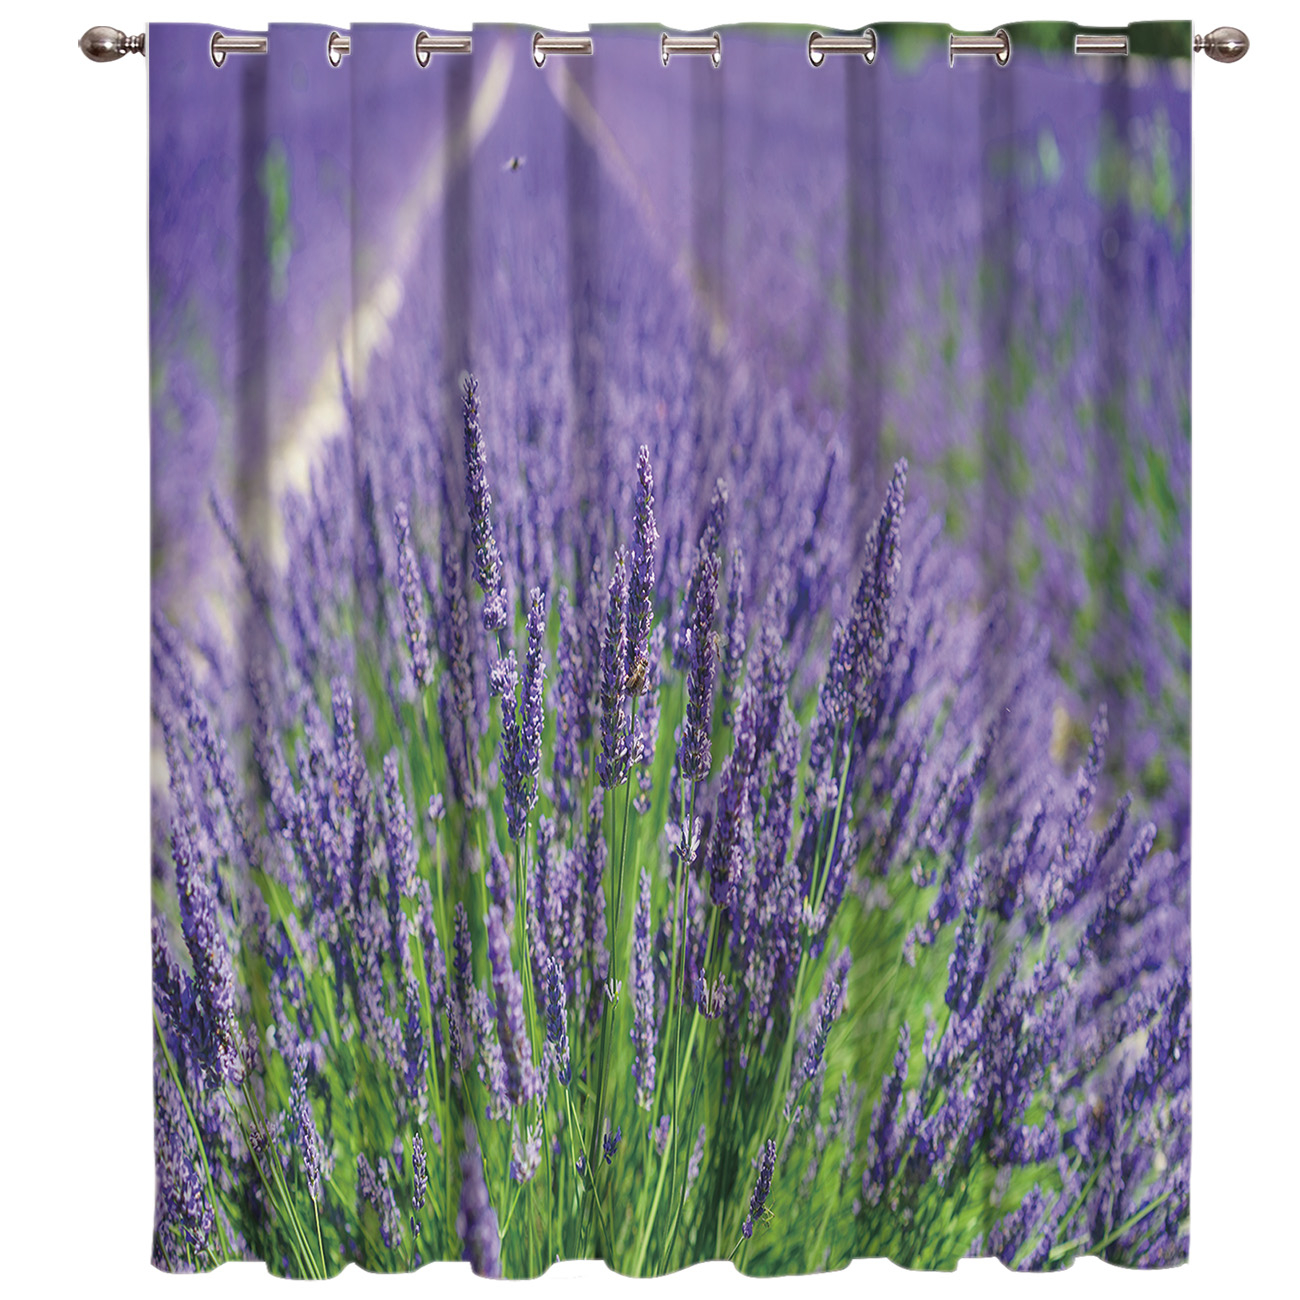 Lavender Flower Window Treatments Curtains Valance Room Curtains Large Window Living Room Bathroom Blackout Kitchen Fabric